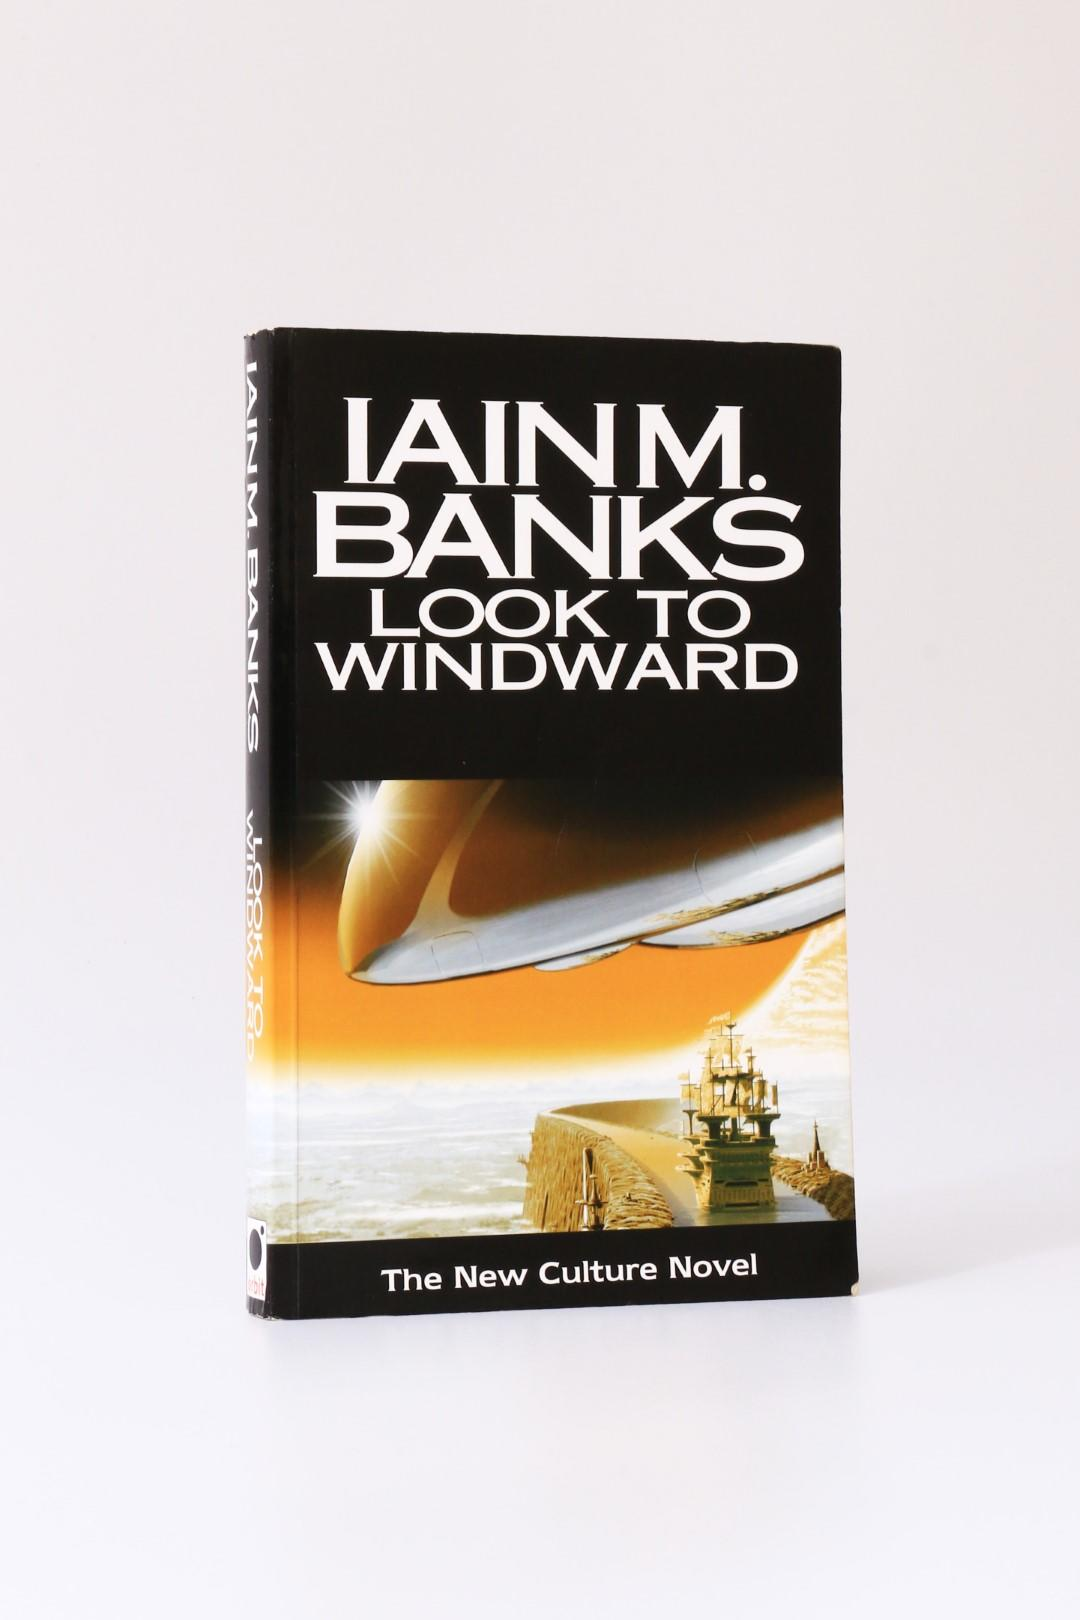 Iain M. Banks - Look to Windward - Orbit, 2000, Proof.